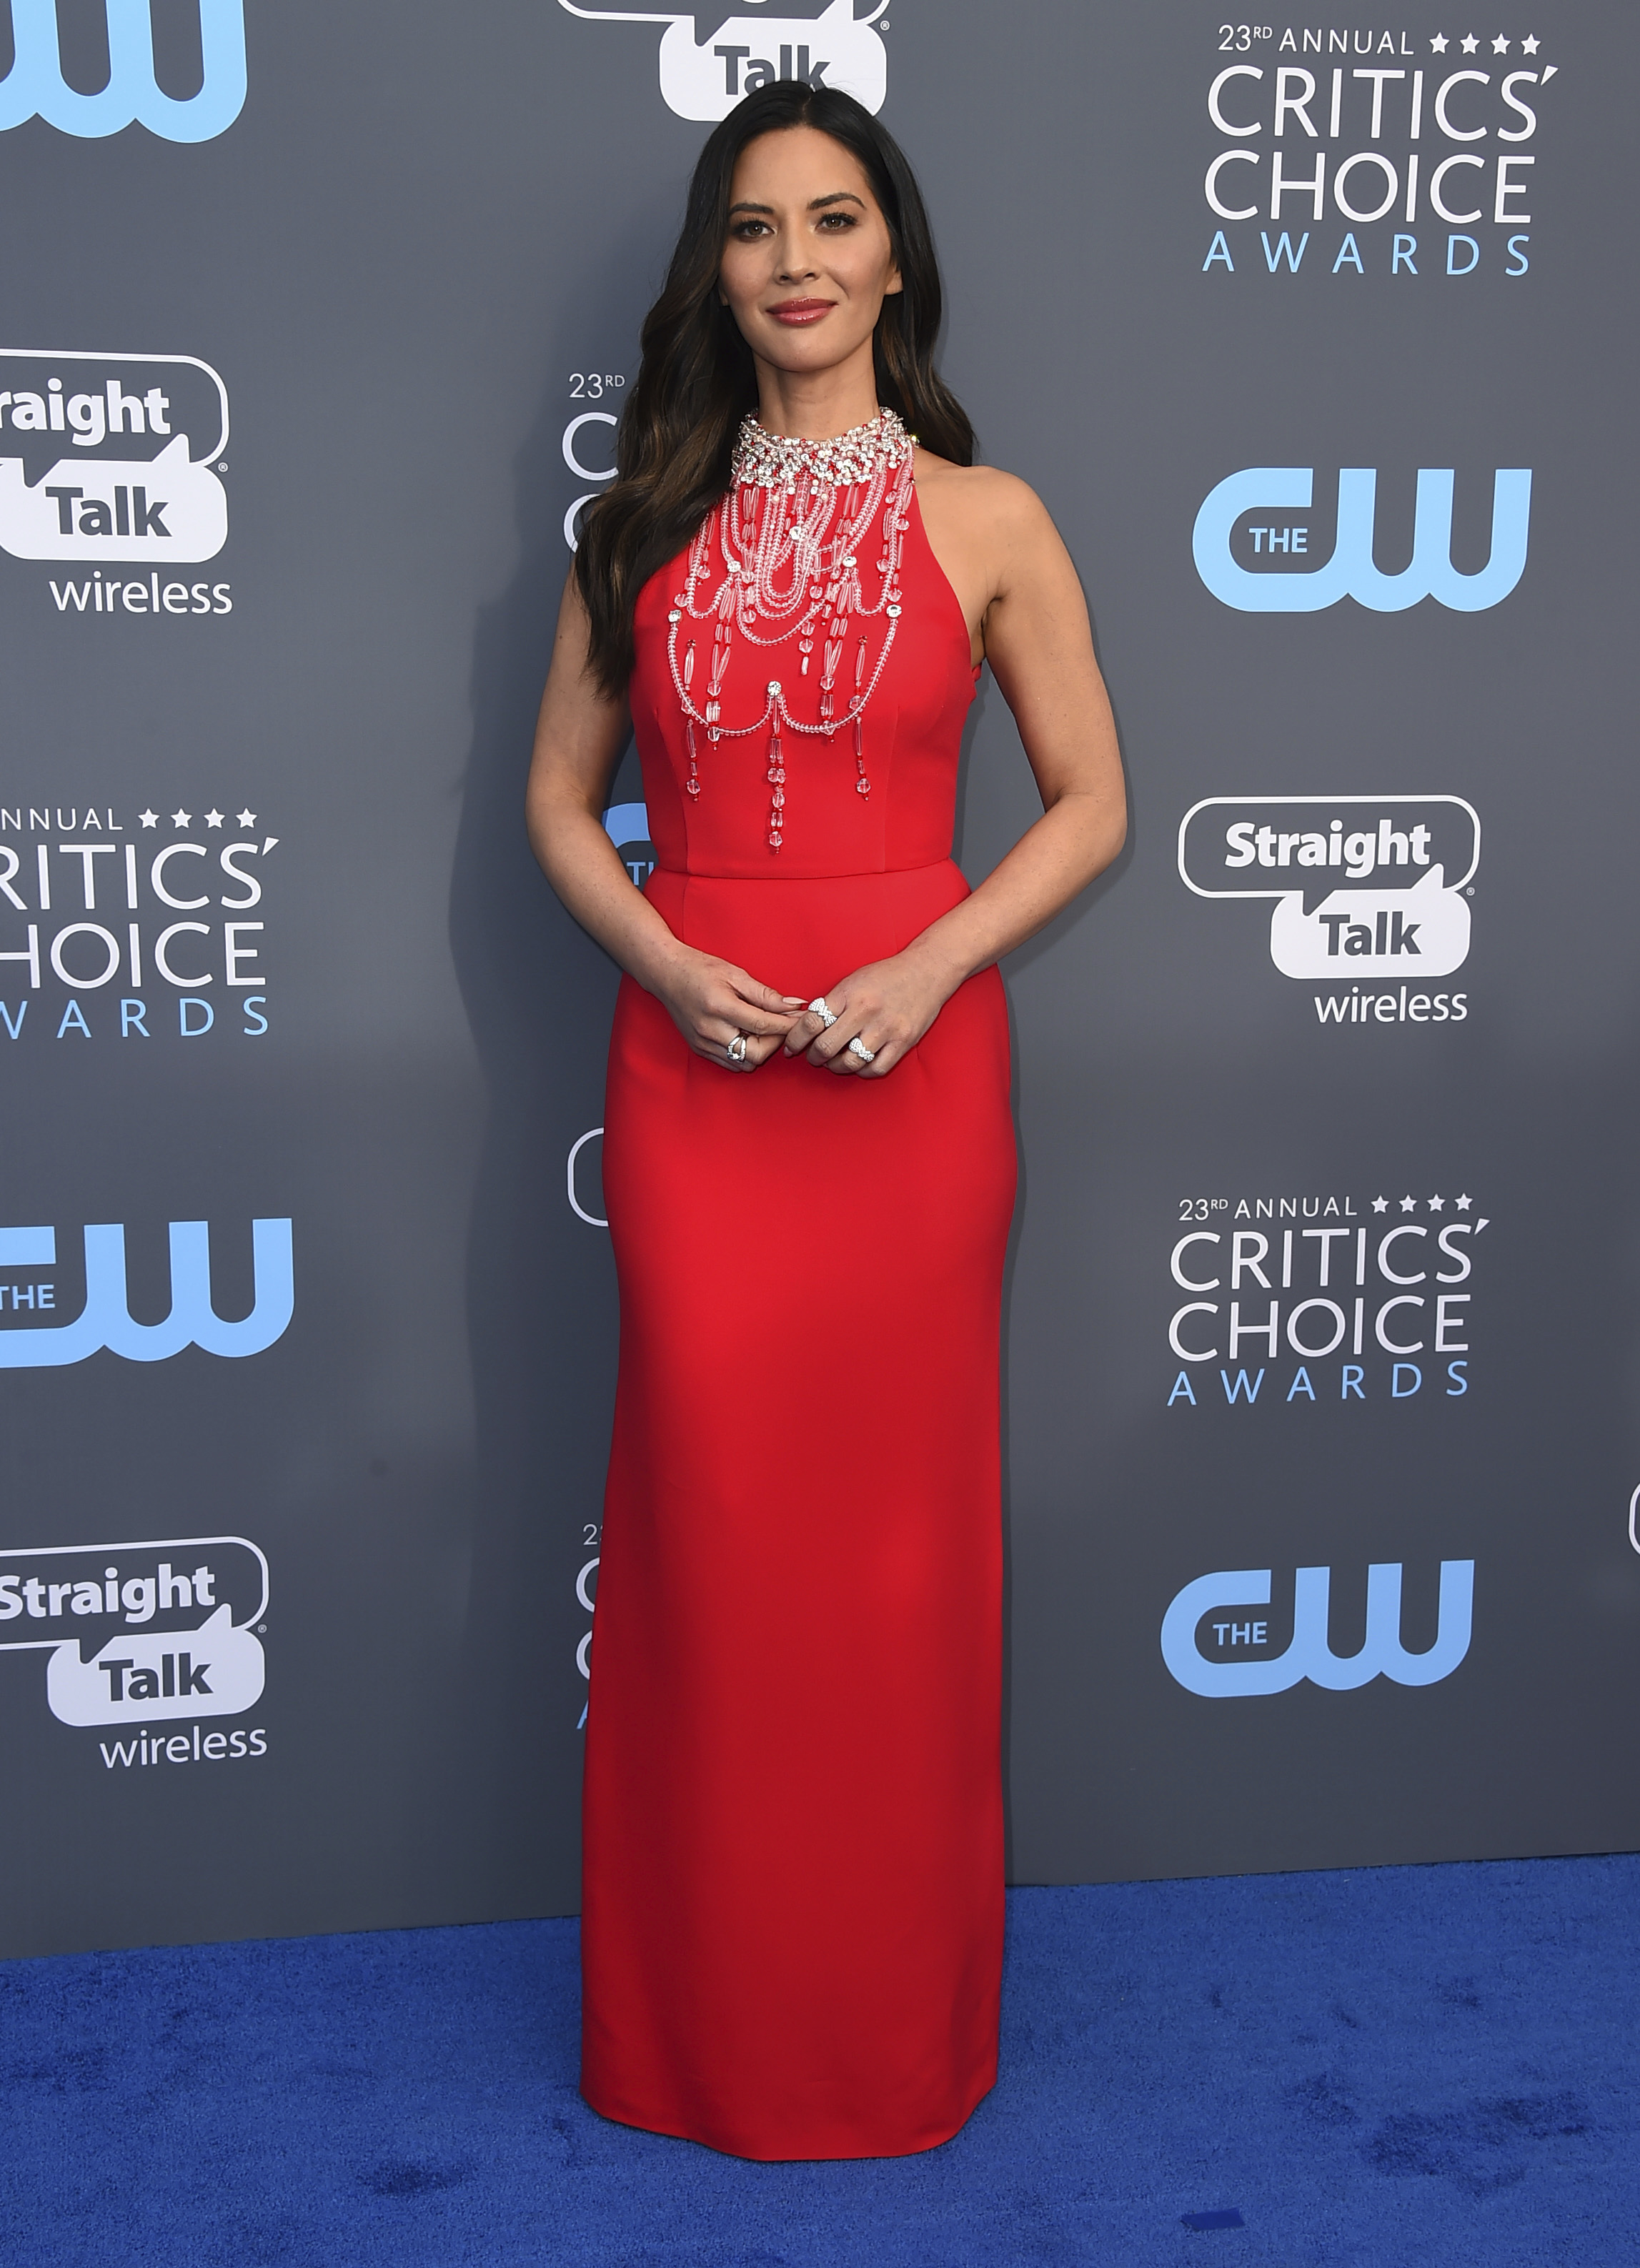 <div class='meta'><div class='origin-logo' data-origin='AP'></div><span class='caption-text' data-credit='Jordan Strauss/Invision/AP'>Olivia Munn arrives at the 23rd annual Critics' Choice Awards at the Barker Hangar on Thursday, Jan. 11, 2018, in Santa Monica, Calif.</span></div>